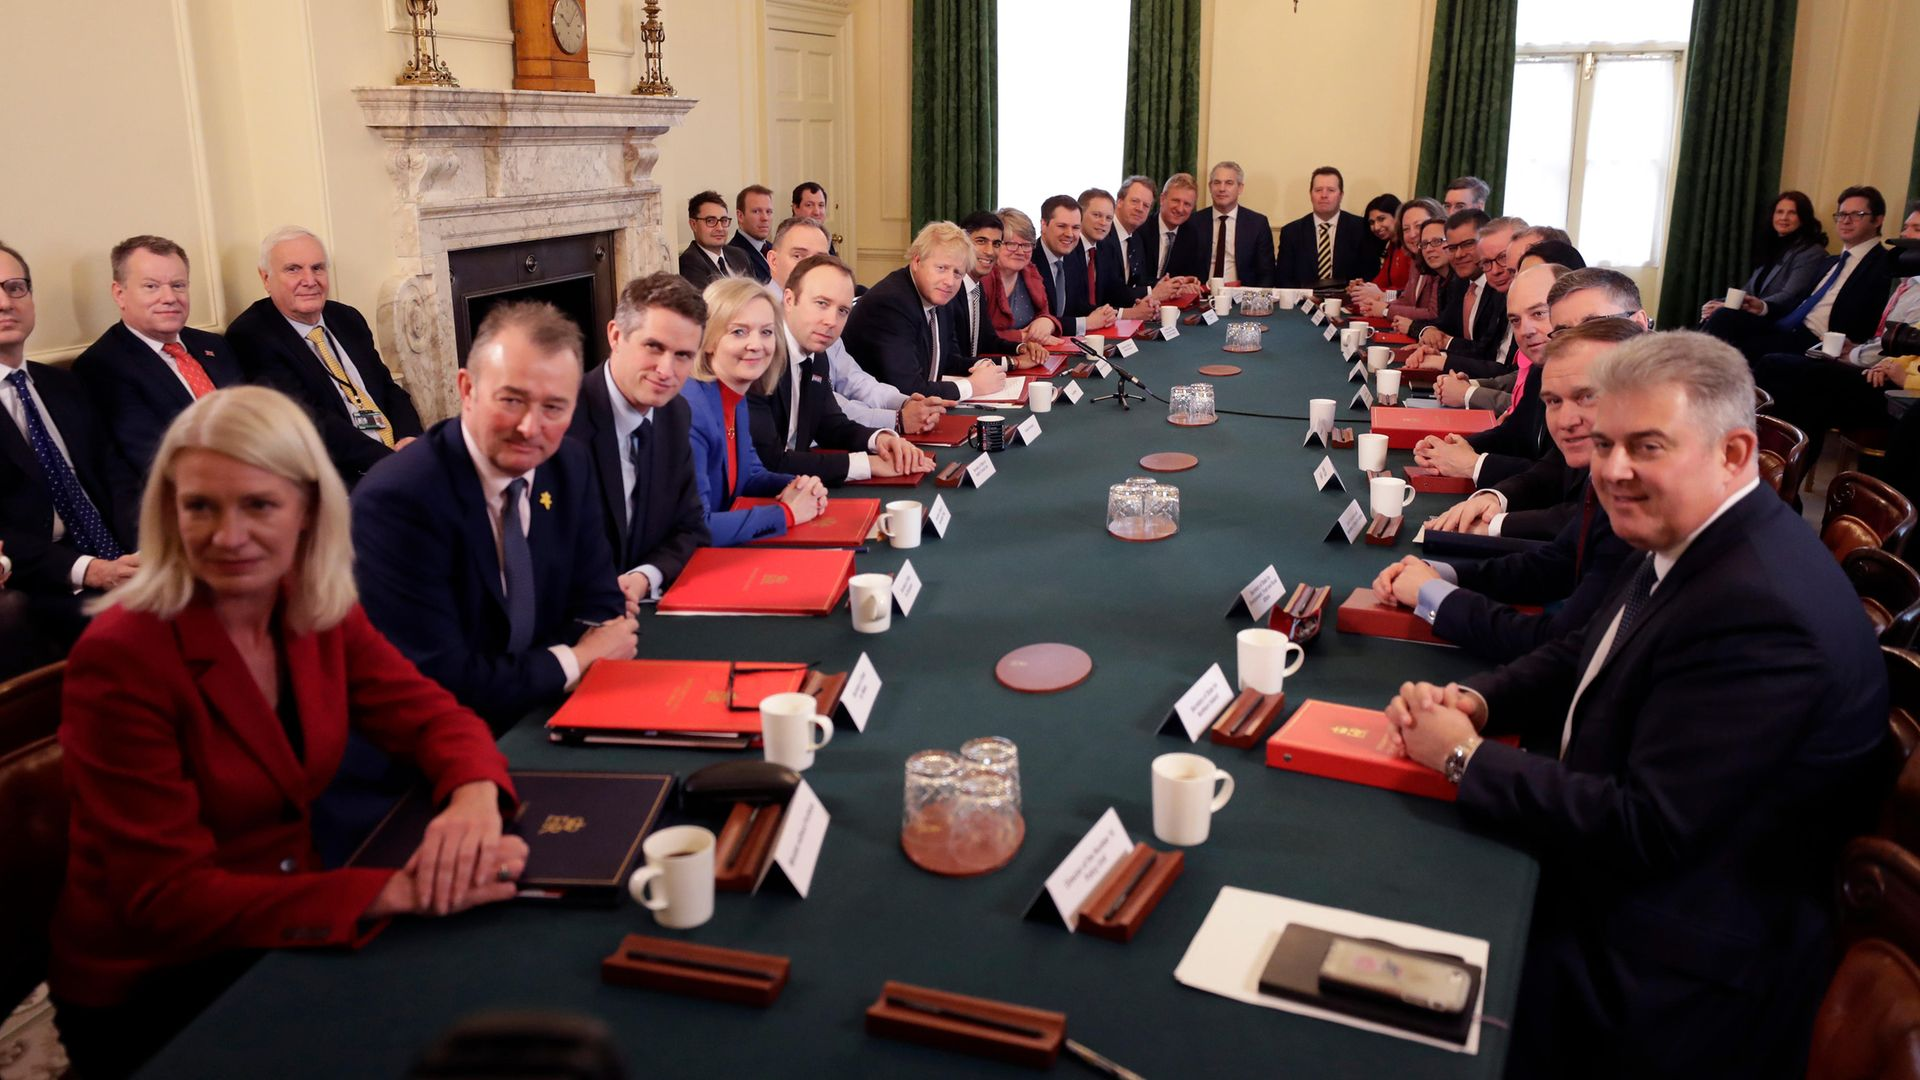 Prime Minister Boris Johnson presides over cabinet meeting at 10 Downing Street - Credit: PA